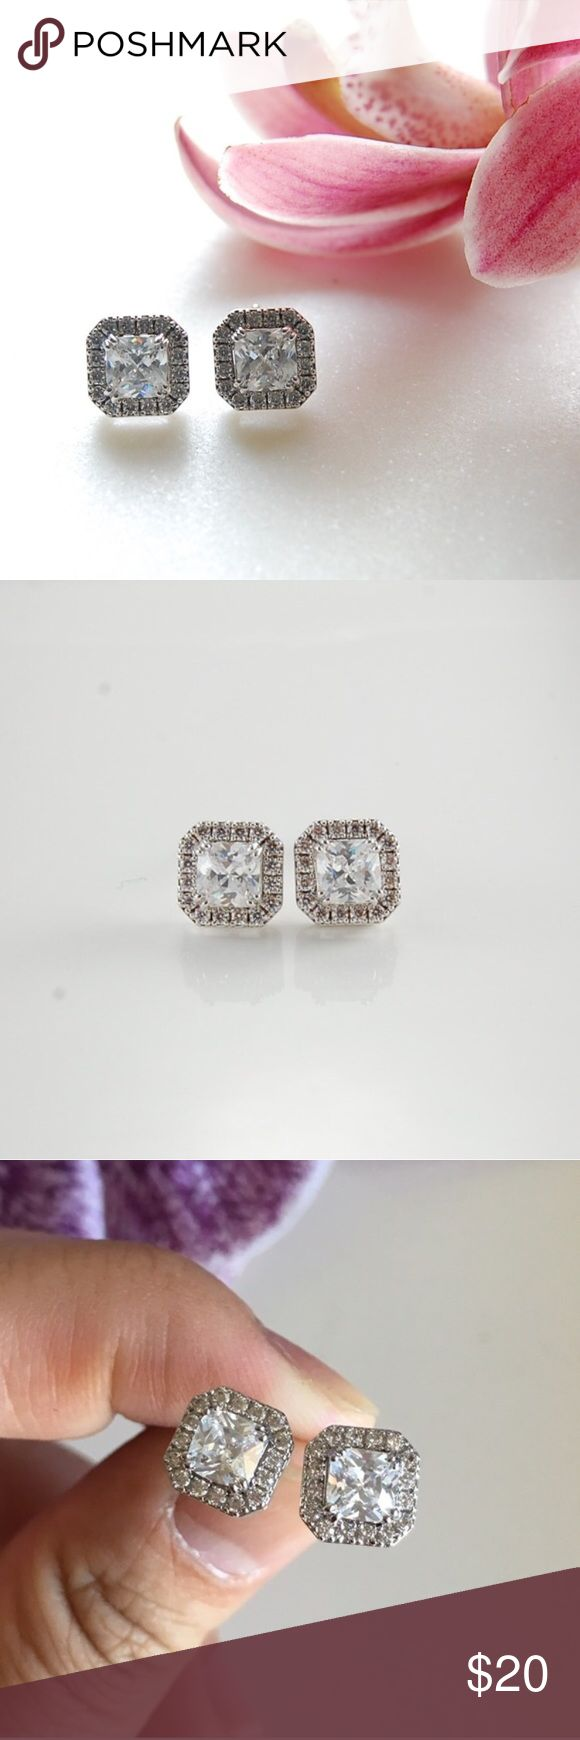 CZ Studs | Square Square cubic zirconia studs surrounded by additional CZs. Single CZ is .75 karat. Includes box. Price firm unless bundled. {E3186}   Instagram: @bringingupsuns Jewelry Earrings